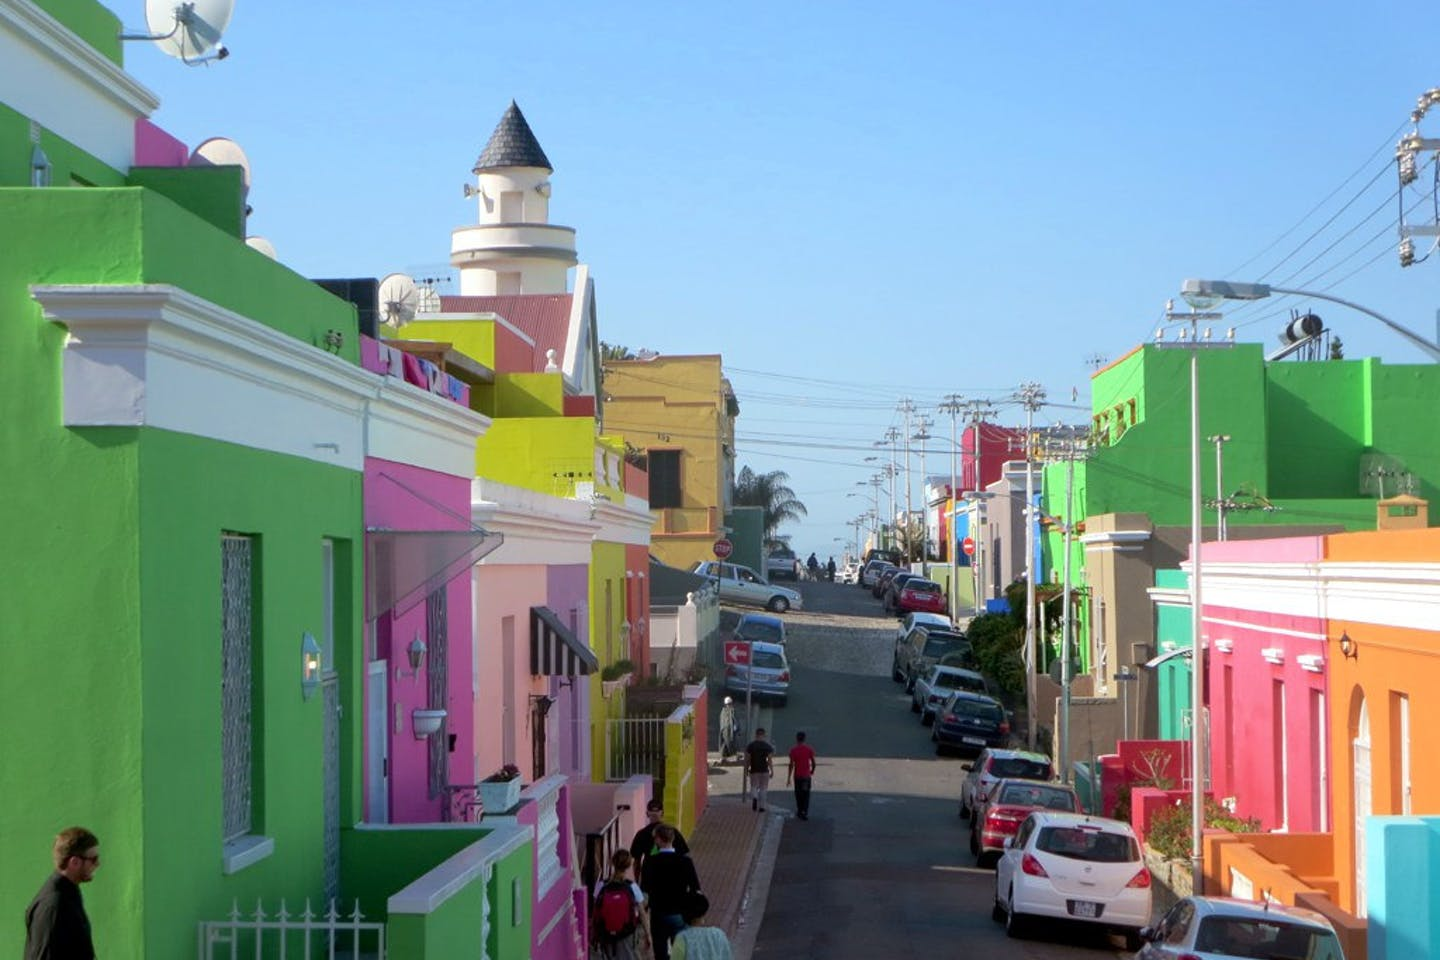 The Bo-Kaap neighborhood of Cape Town by David Stanley